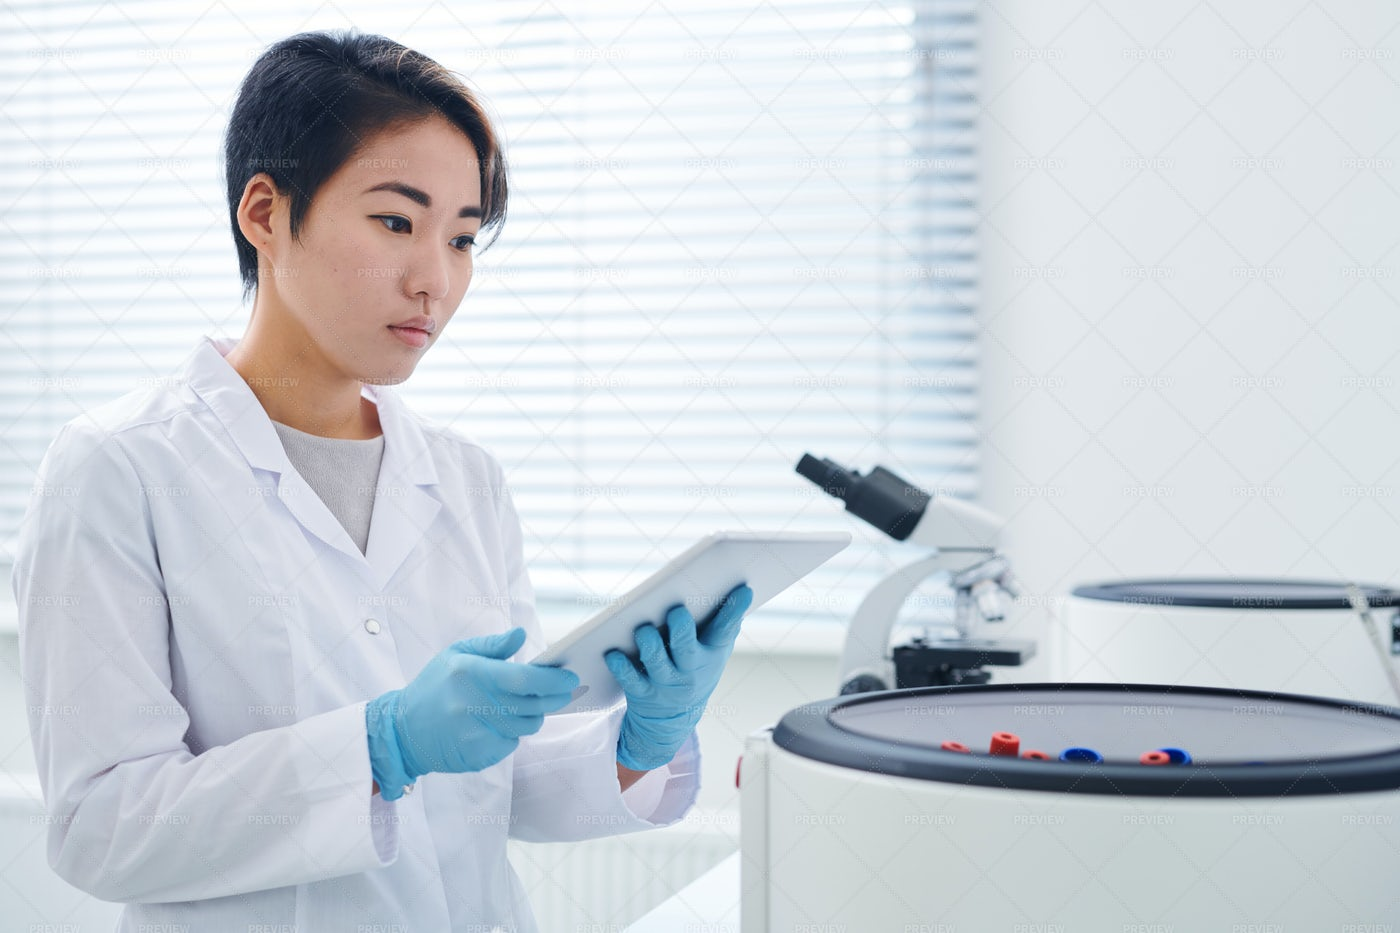 Modern Researcher Viewing Results...: Stock Photos